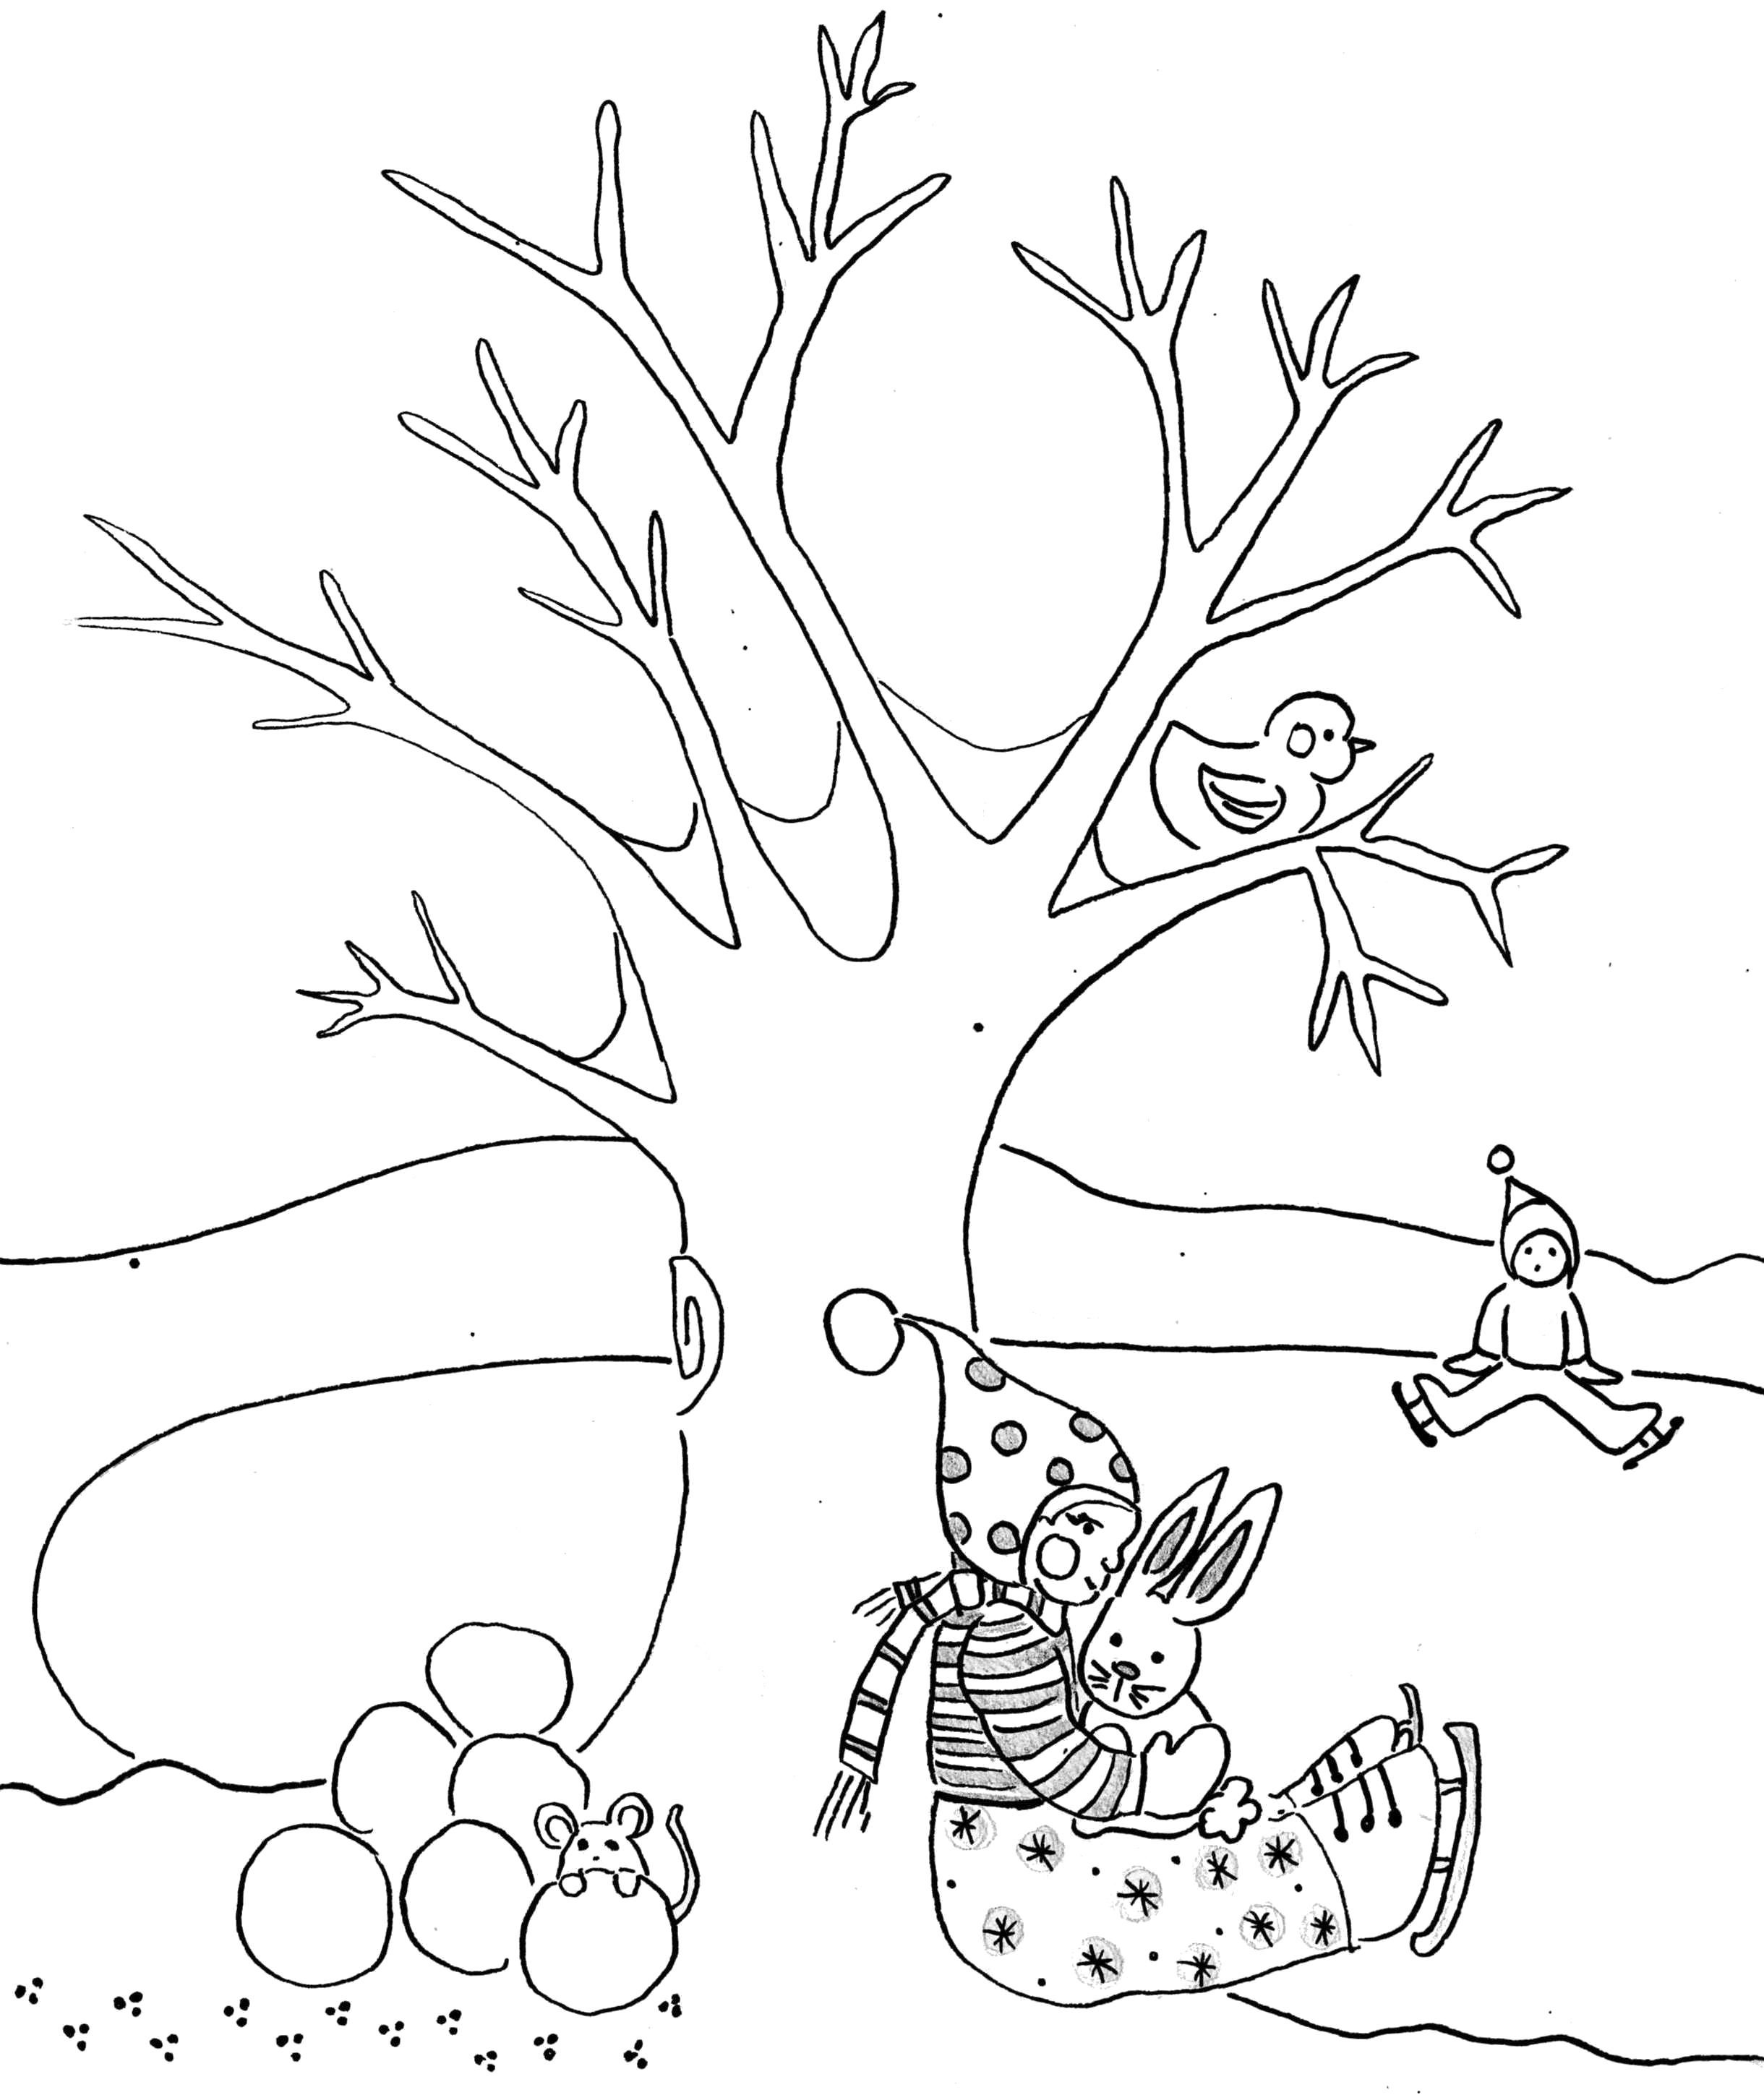 2440x2898 Revolutionary Winter Tree Coloring Page Awesome Bare Free Pages